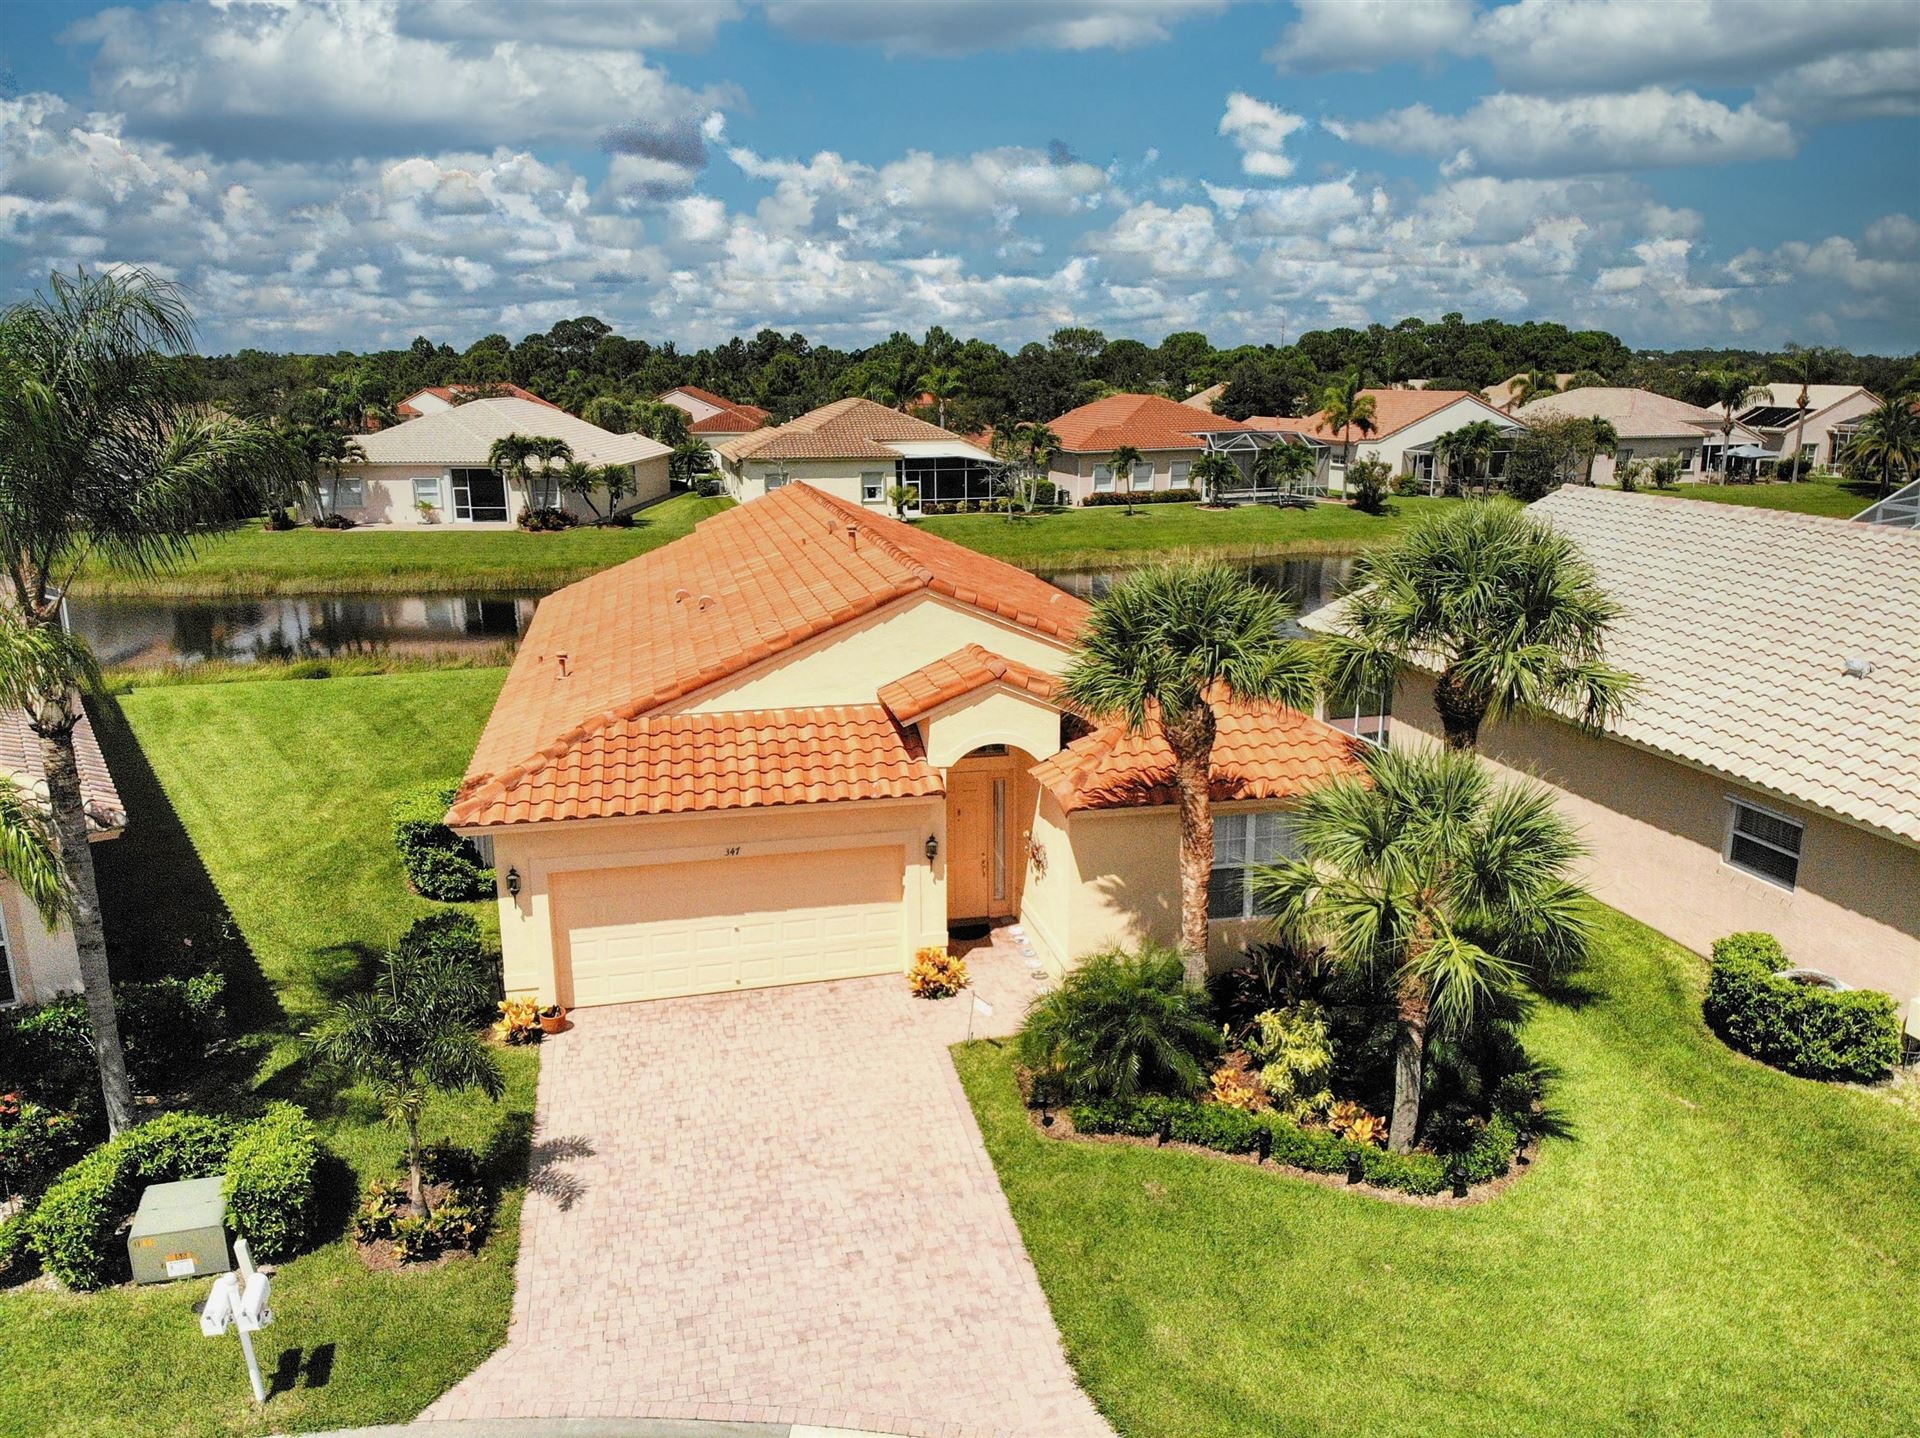 Photo of 347 NW Sunview Way, Port Saint Lucie, FL 34986 (MLS # RX-10740855)